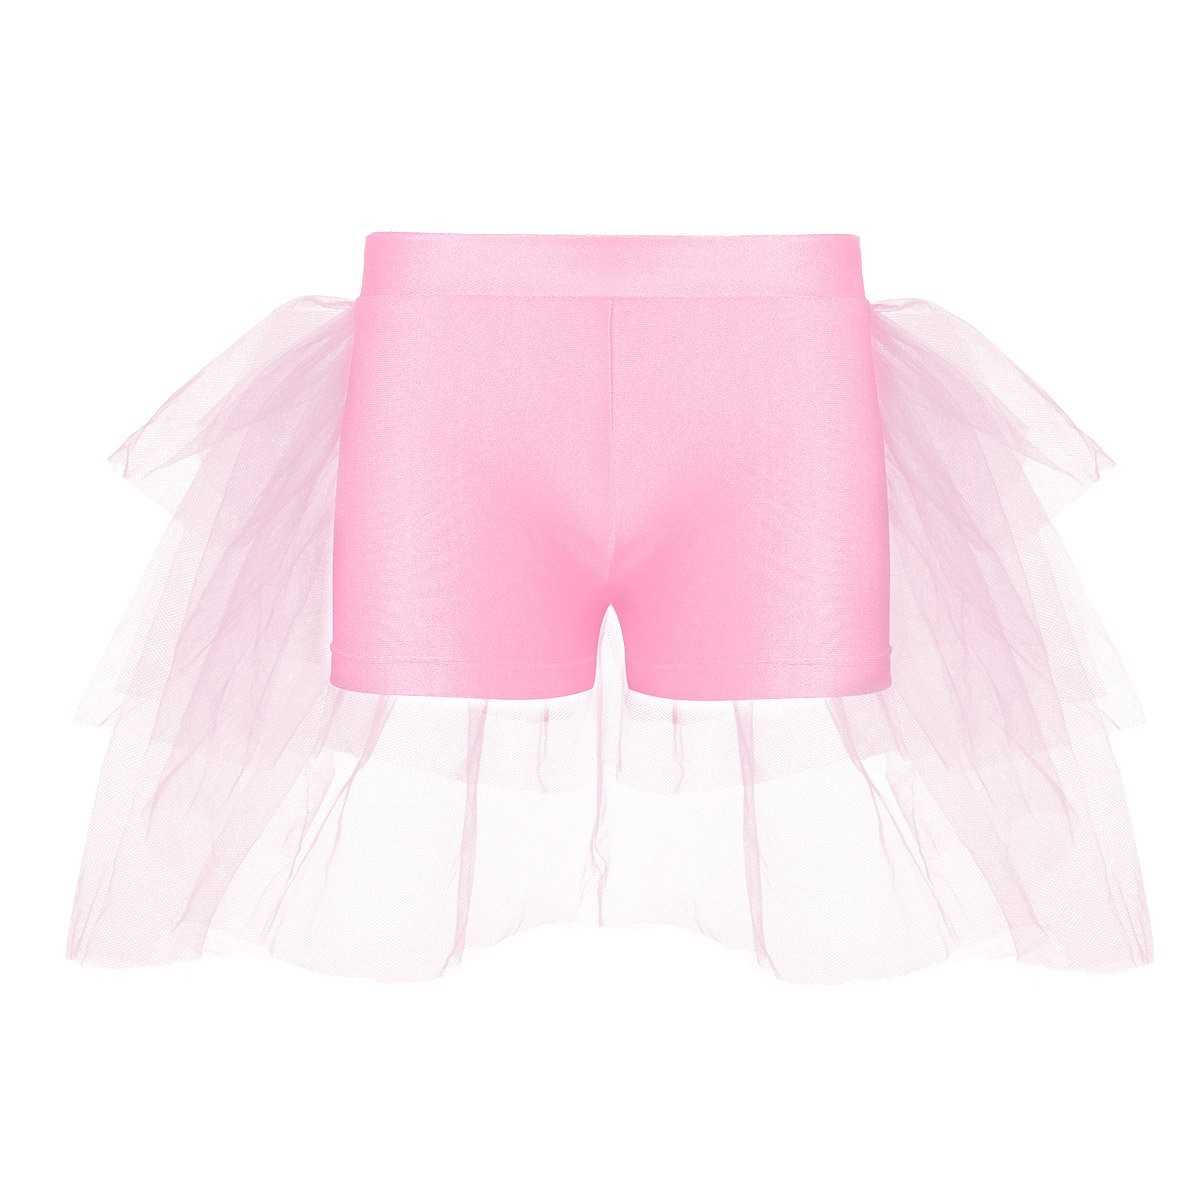 dPois Kids Girls' Ballet Dance Performance Sports Workout Stretch Tight Shorts with Attached Tiered Mesh Bustle Pink 3-4